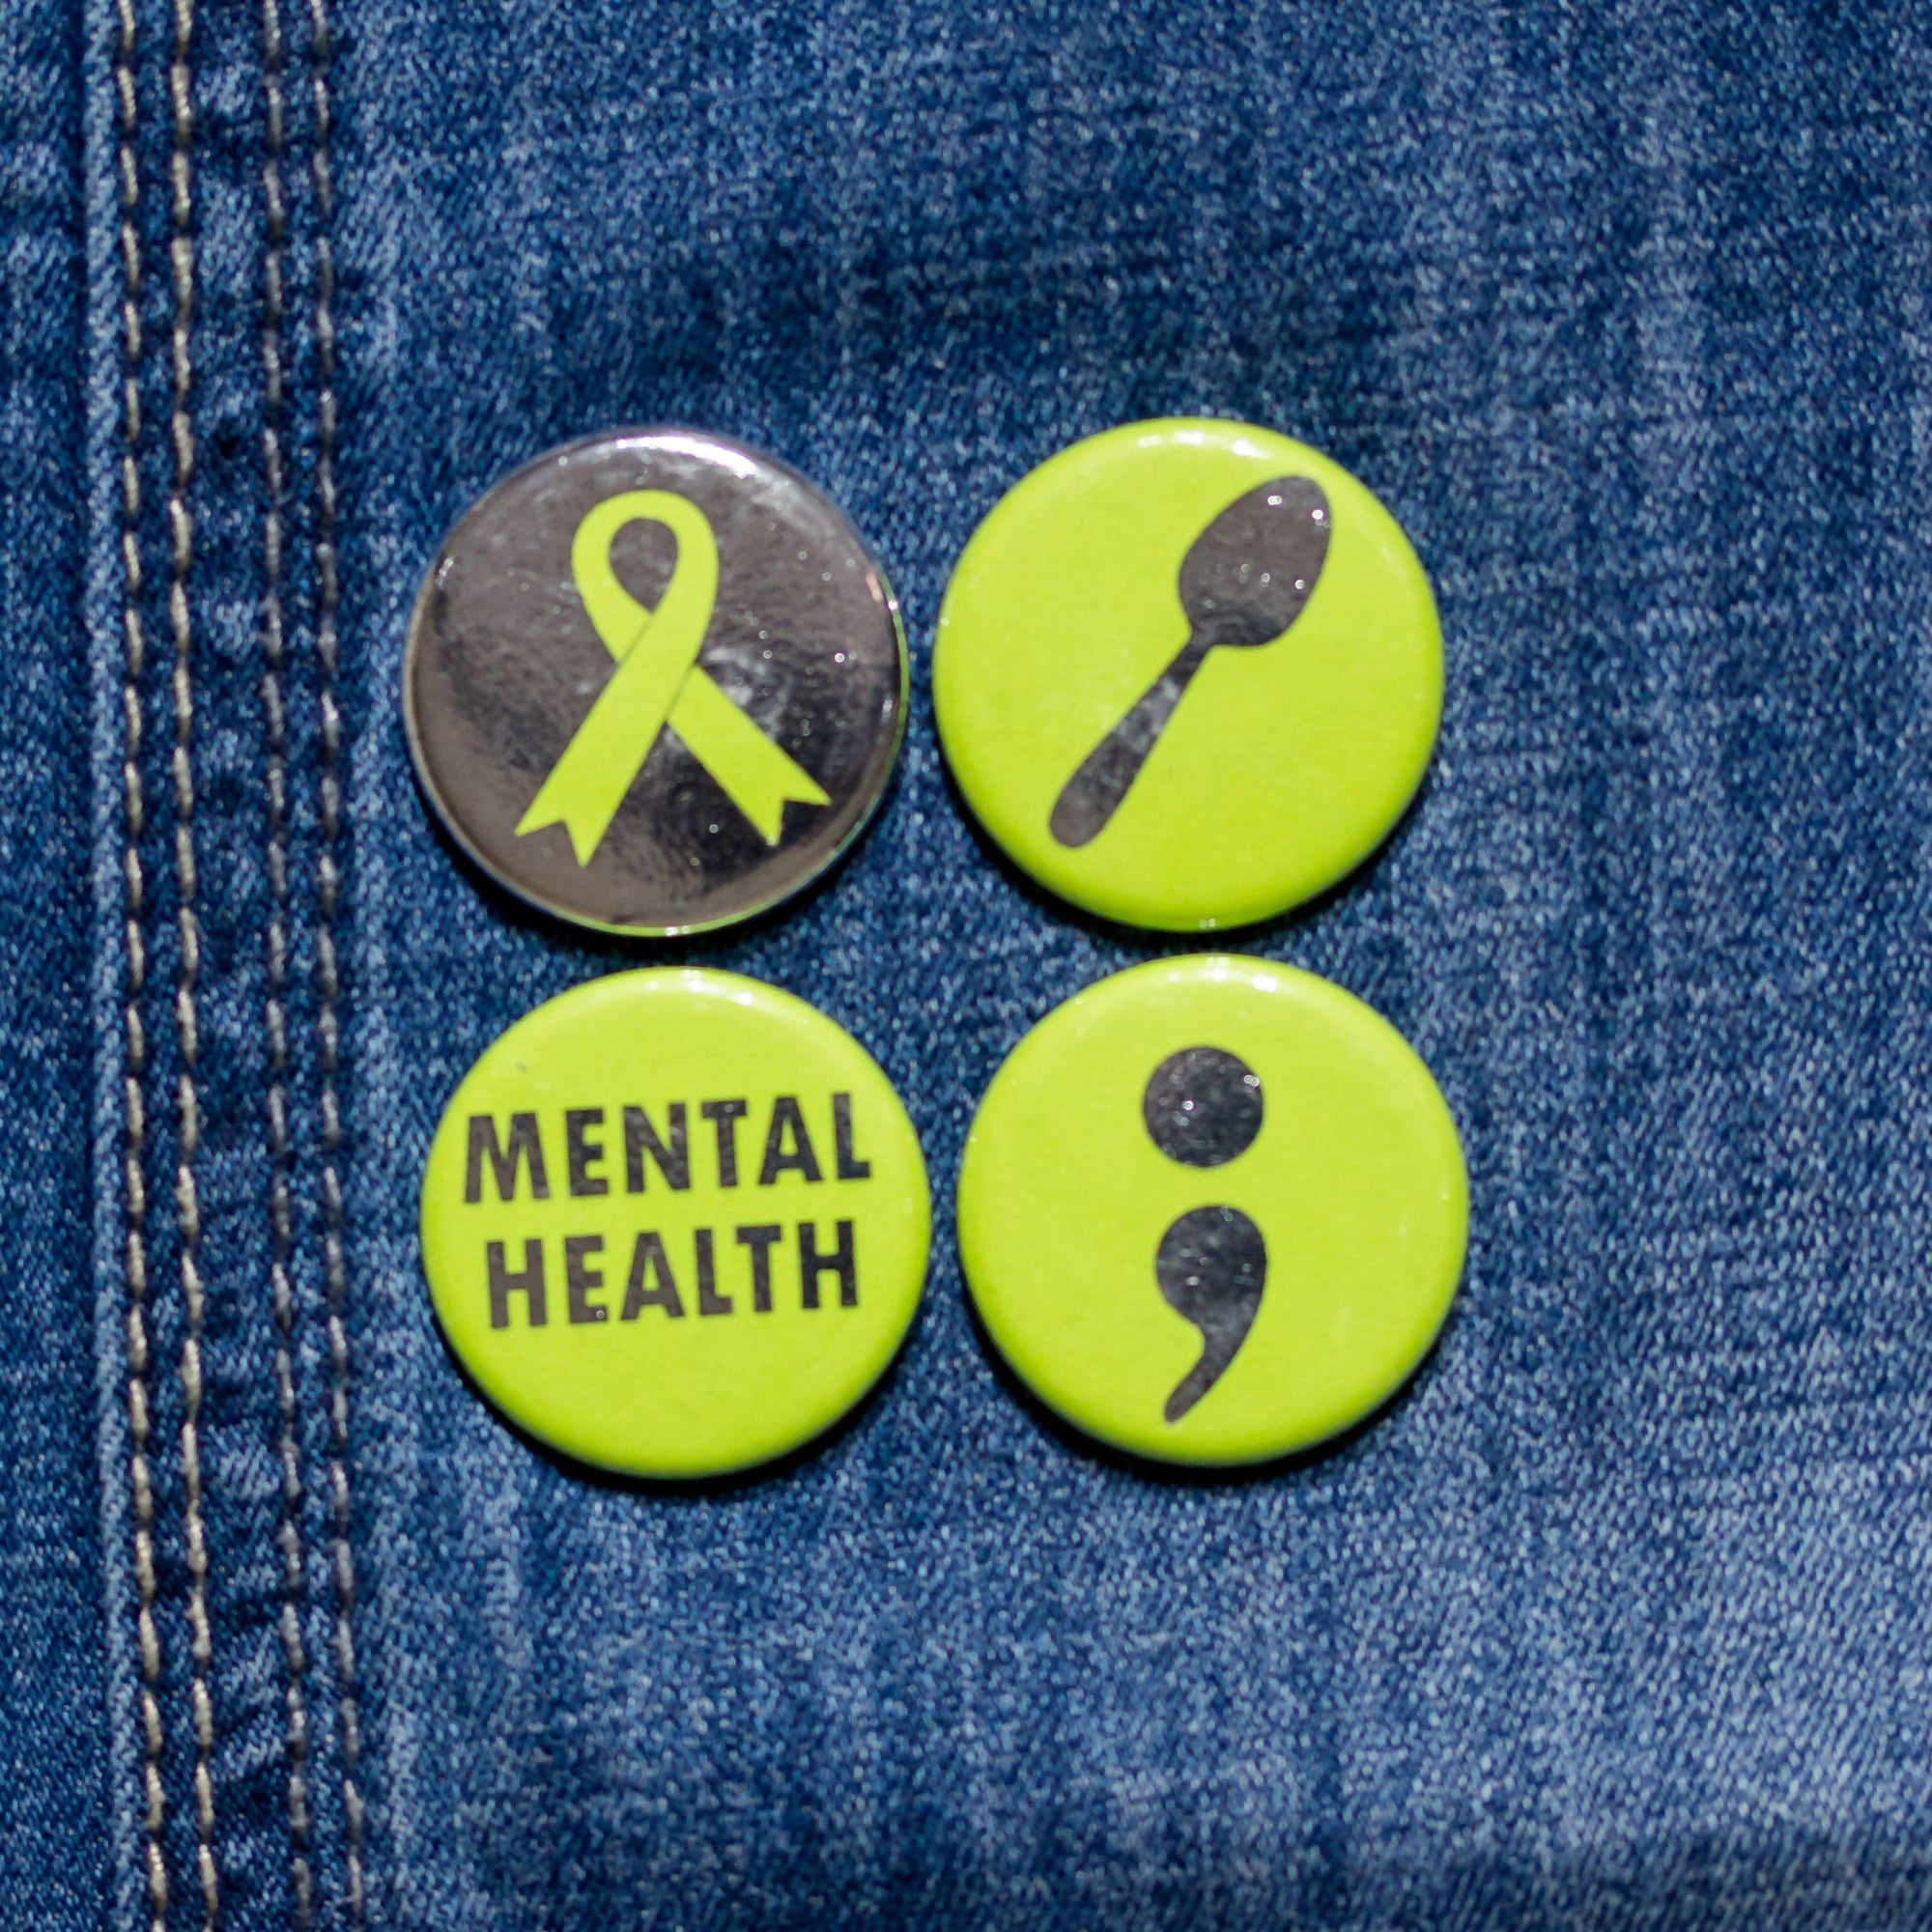 Mental Health Advocacy Customizable Buttons or Strong Ceramic Magnets - Mental Health Awareness - Supports LGBT Youthline